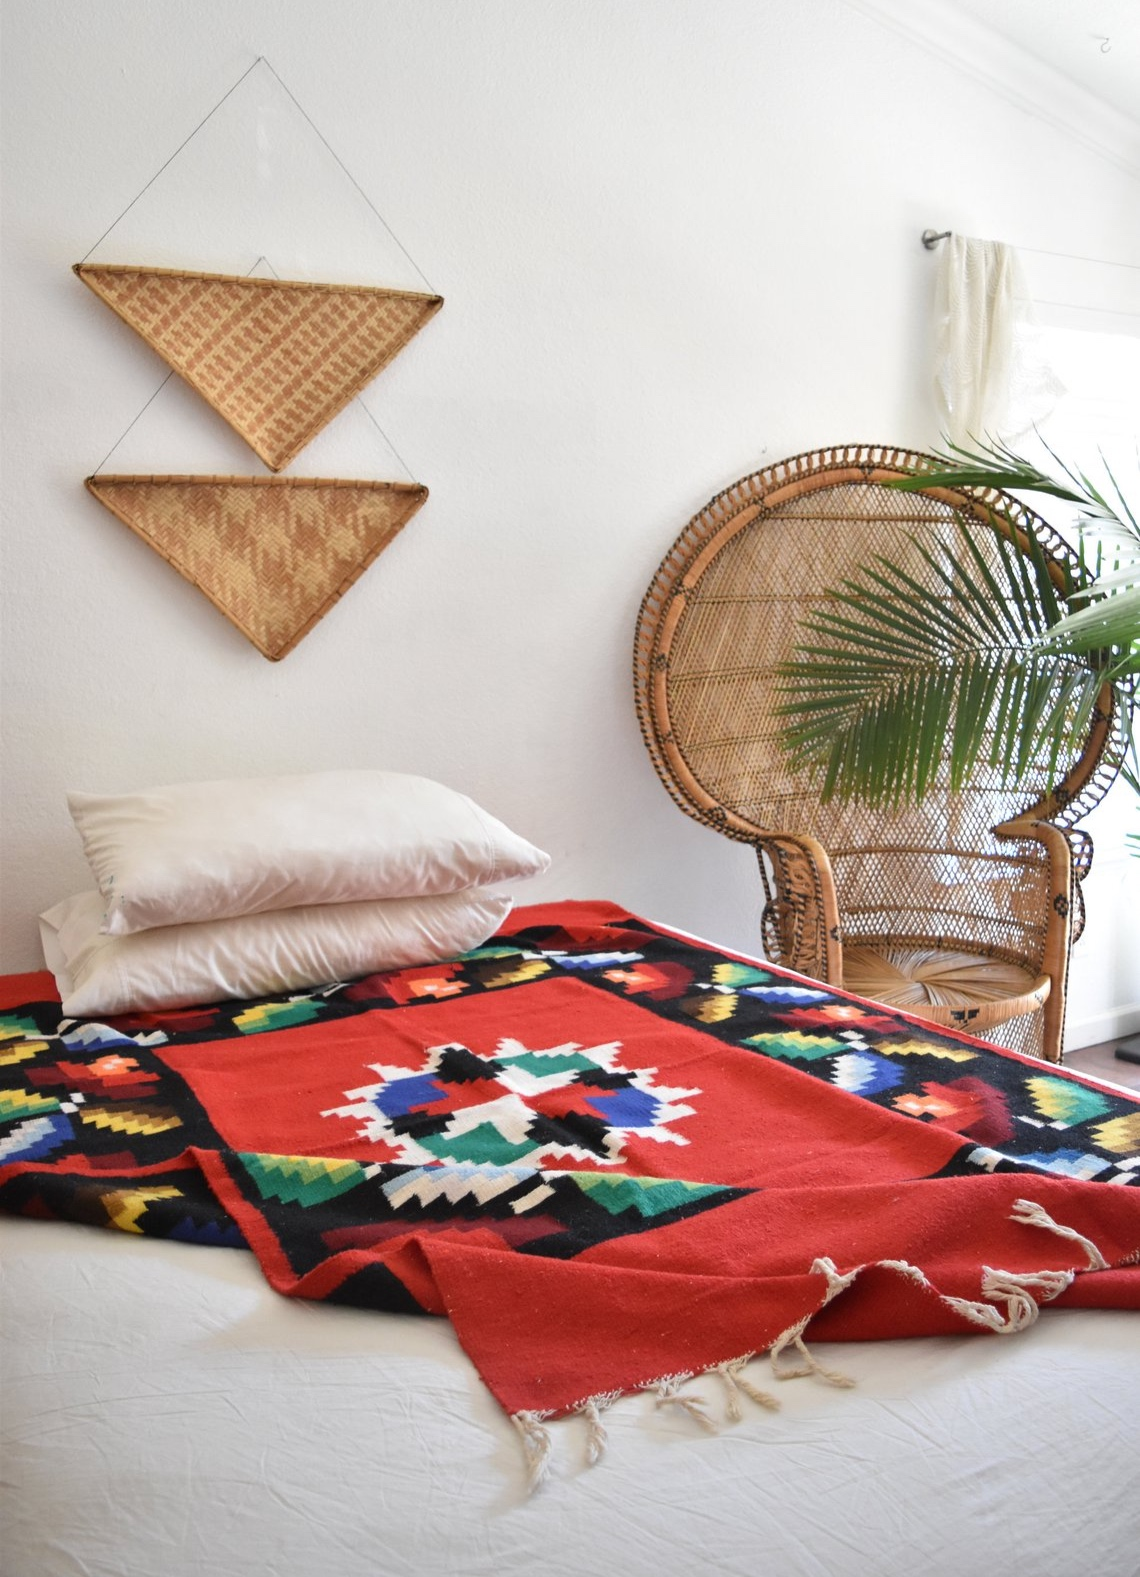 Authentic Multicolored Red Woven Wool Mexican Serape Throw Rug By Simplychi